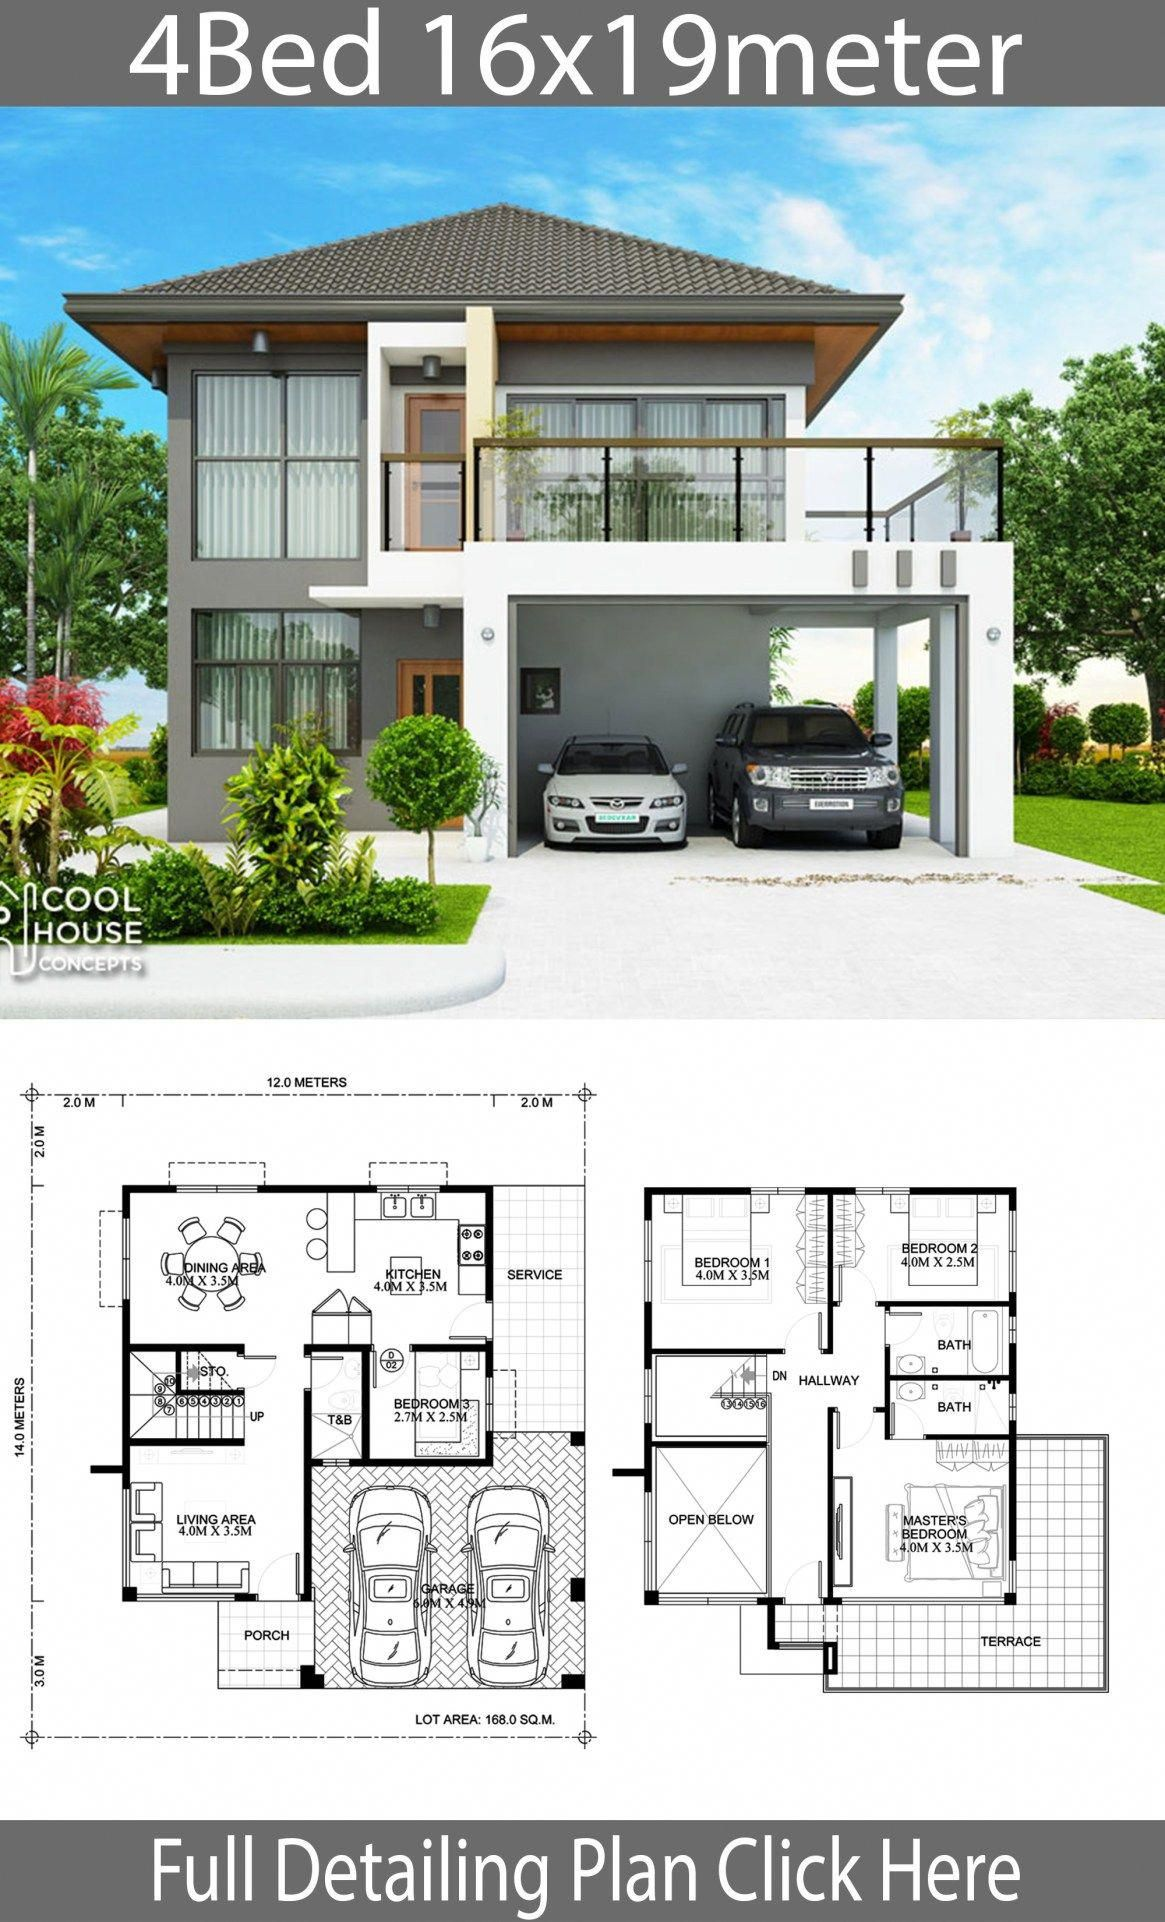 Home Design Plan 16x19m With 4 Bedrooms Home Design With Plansearch Besthomedesigns Philippines House Design 2 Storey House Design Modern House Plans